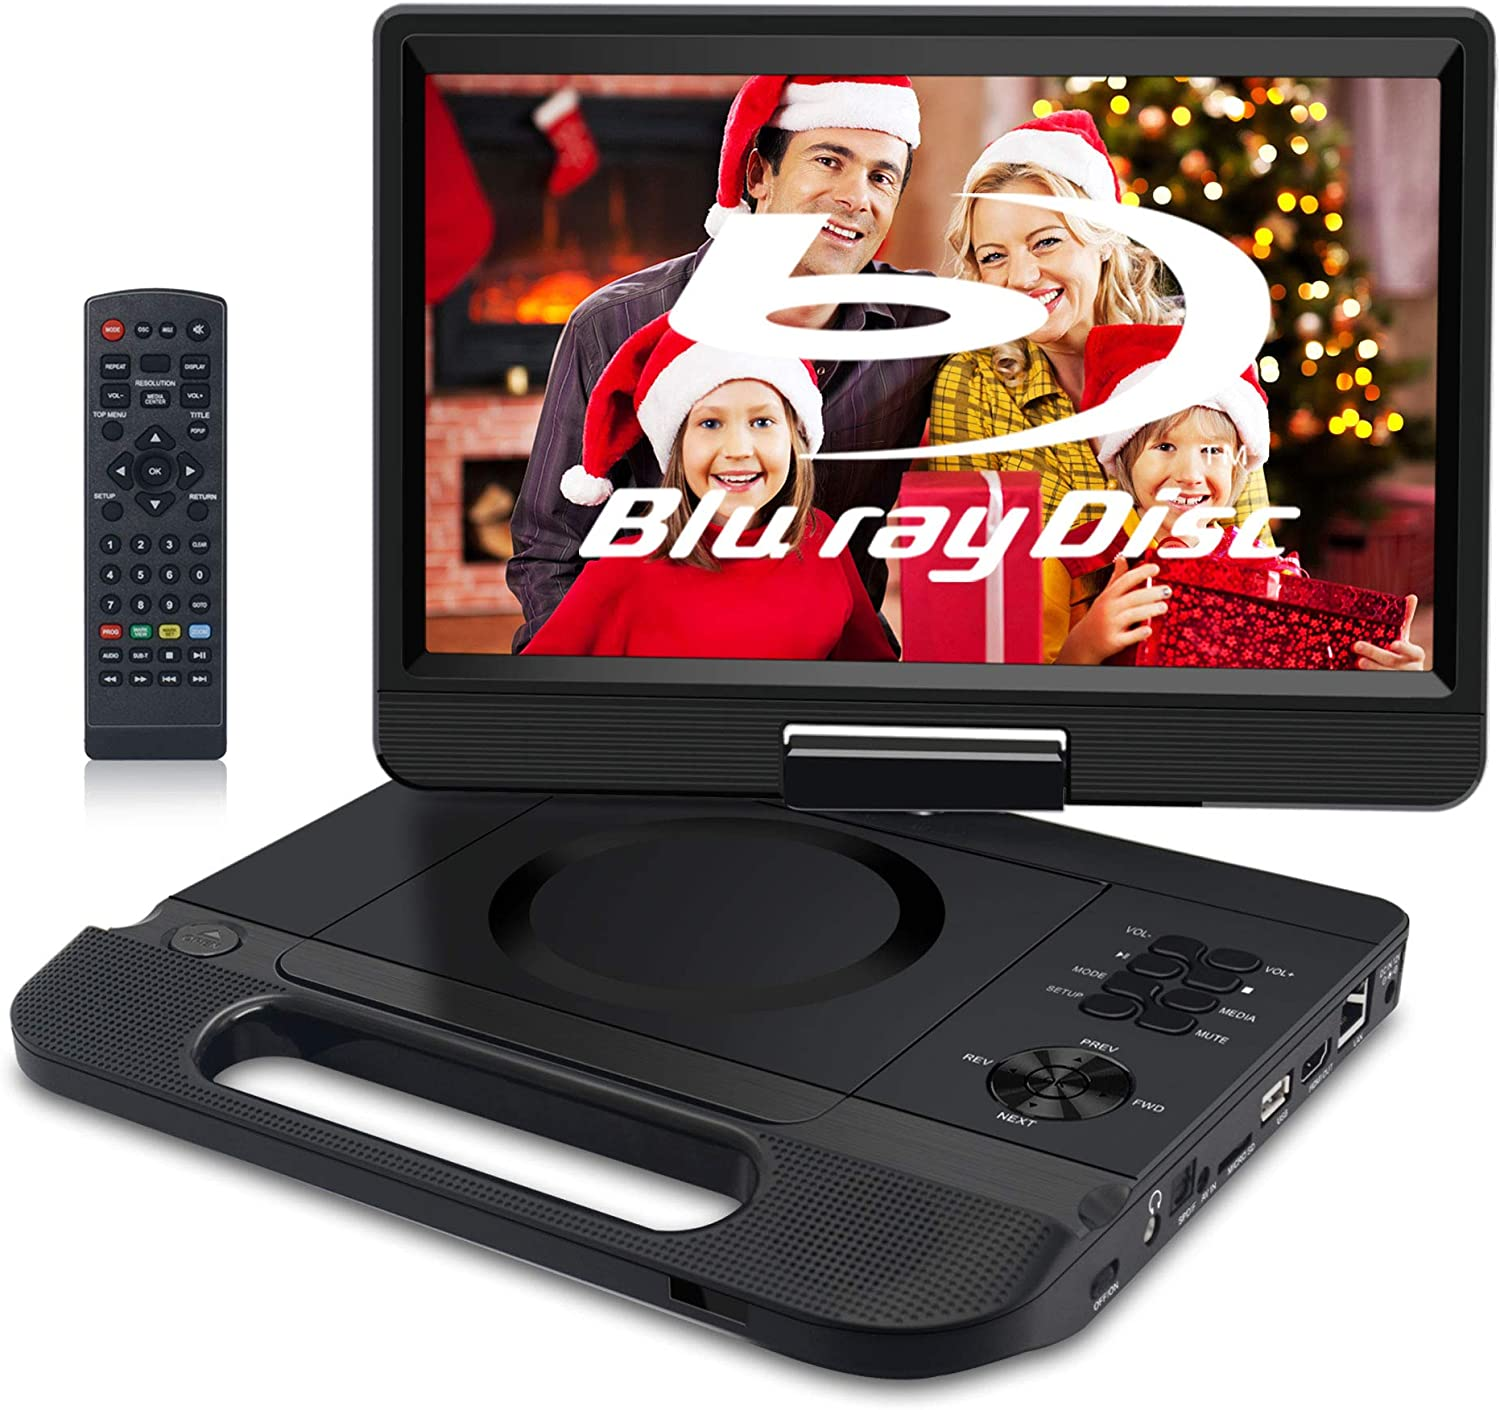 FANGOR - Reproductor de DVD de Blu-Ray portátil de 10,1 pulgadas con batería recargable, compatible con Full HD 1080P, Dolby Audio MP4 / USB/ SD/ MMC, pantalla de sincronización con HDMI Out / AV in